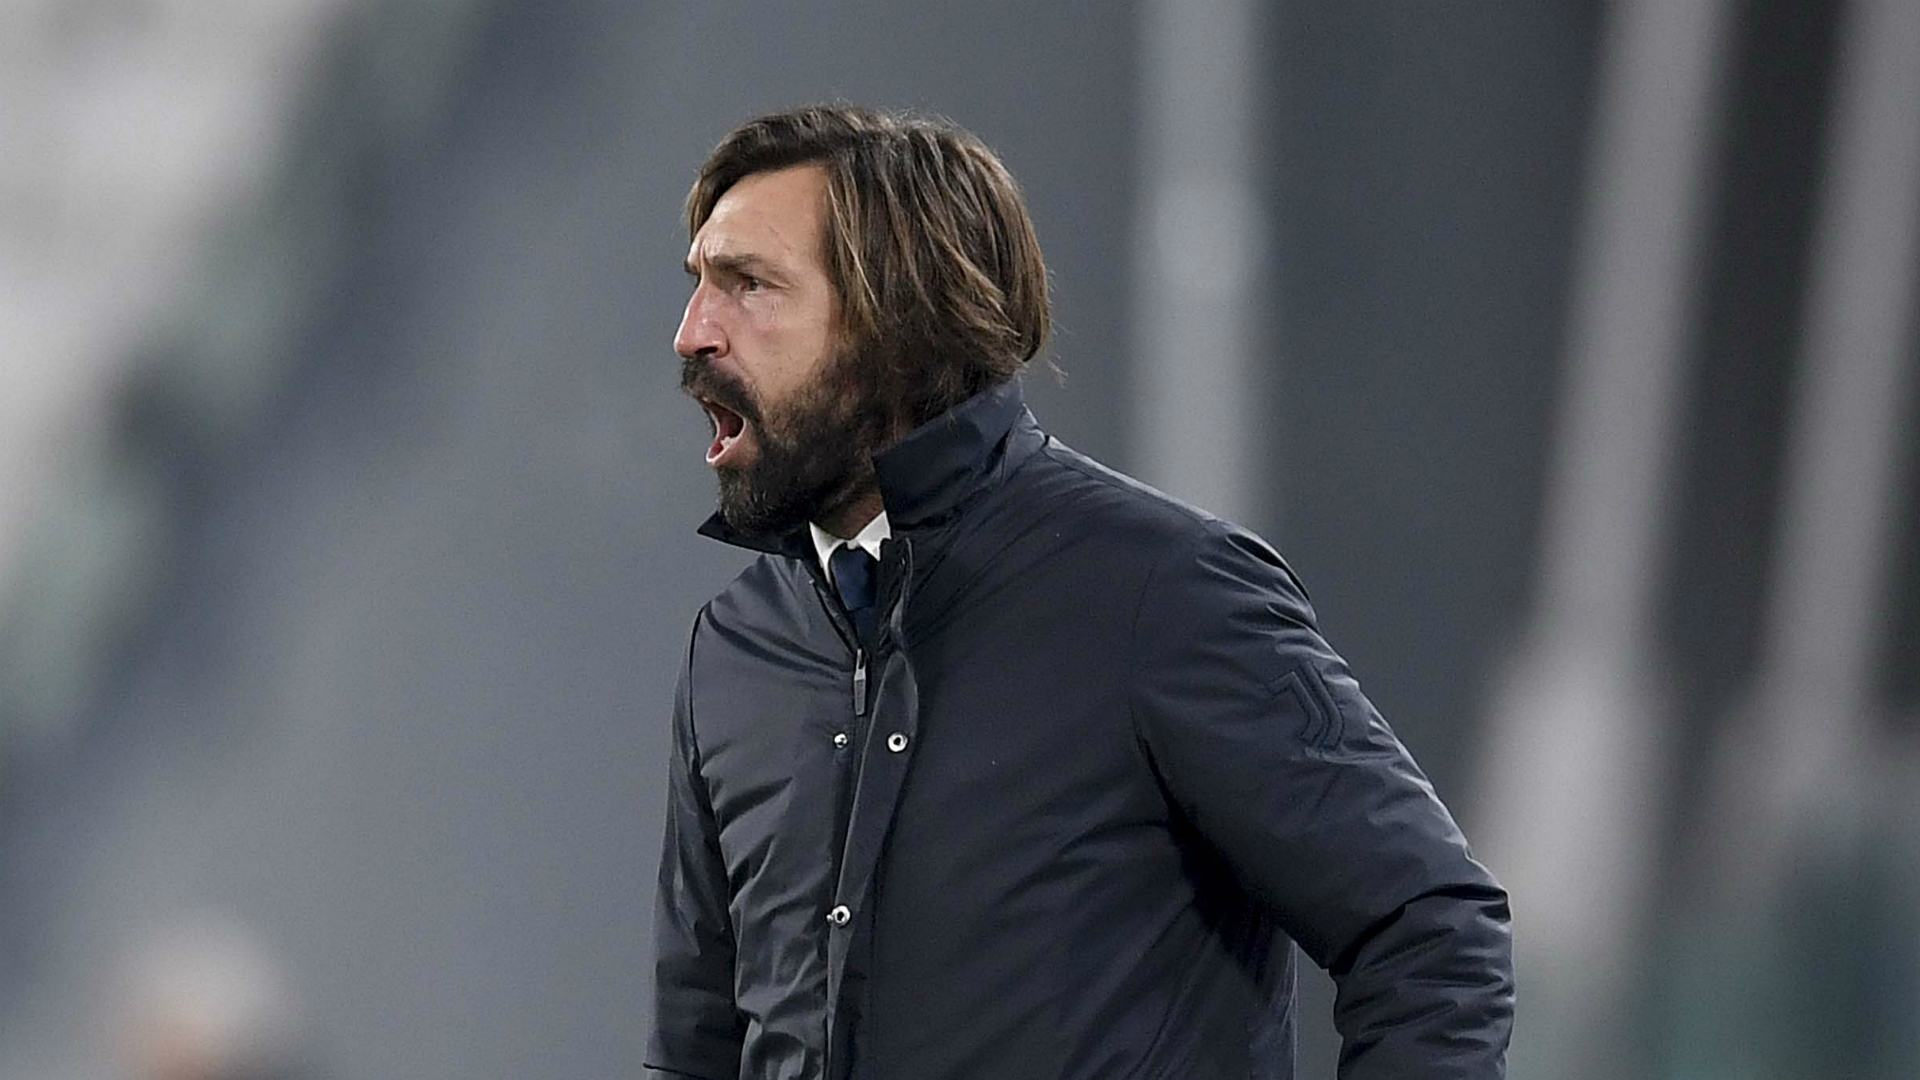 Pirlo hits out at Juventus players' attitude after heavy home defeat to Fiorentina